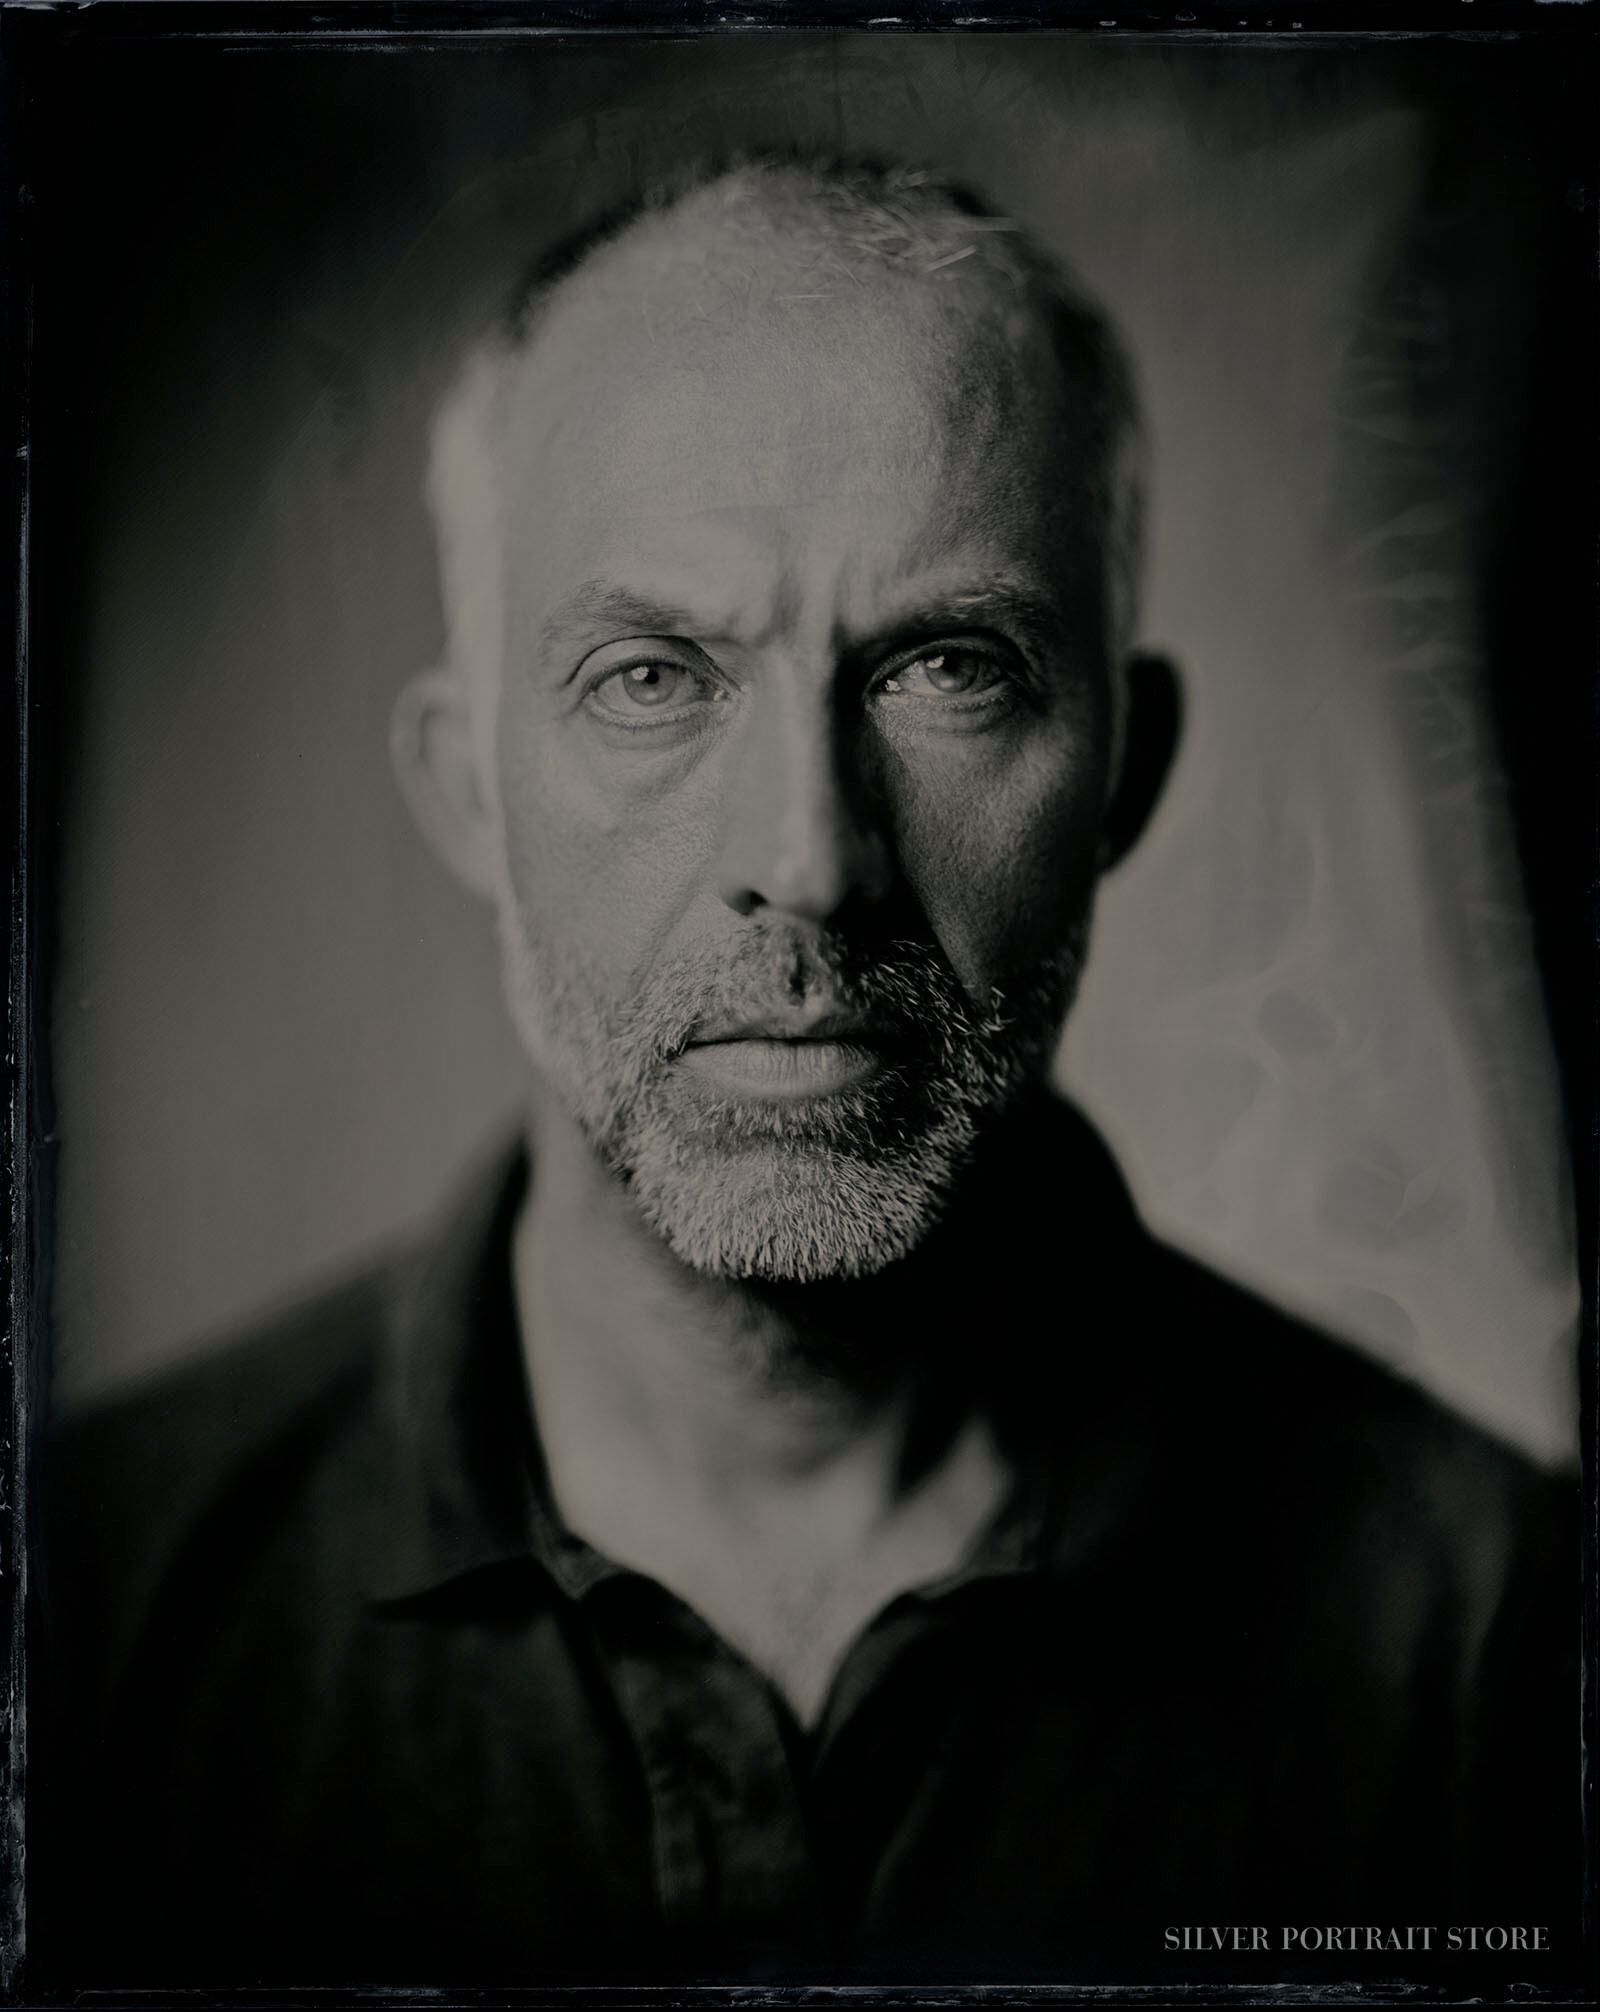 Cedric-Silver Portrait Store-Scan from Wet plate collodion-Tintype 20 x 25 cm